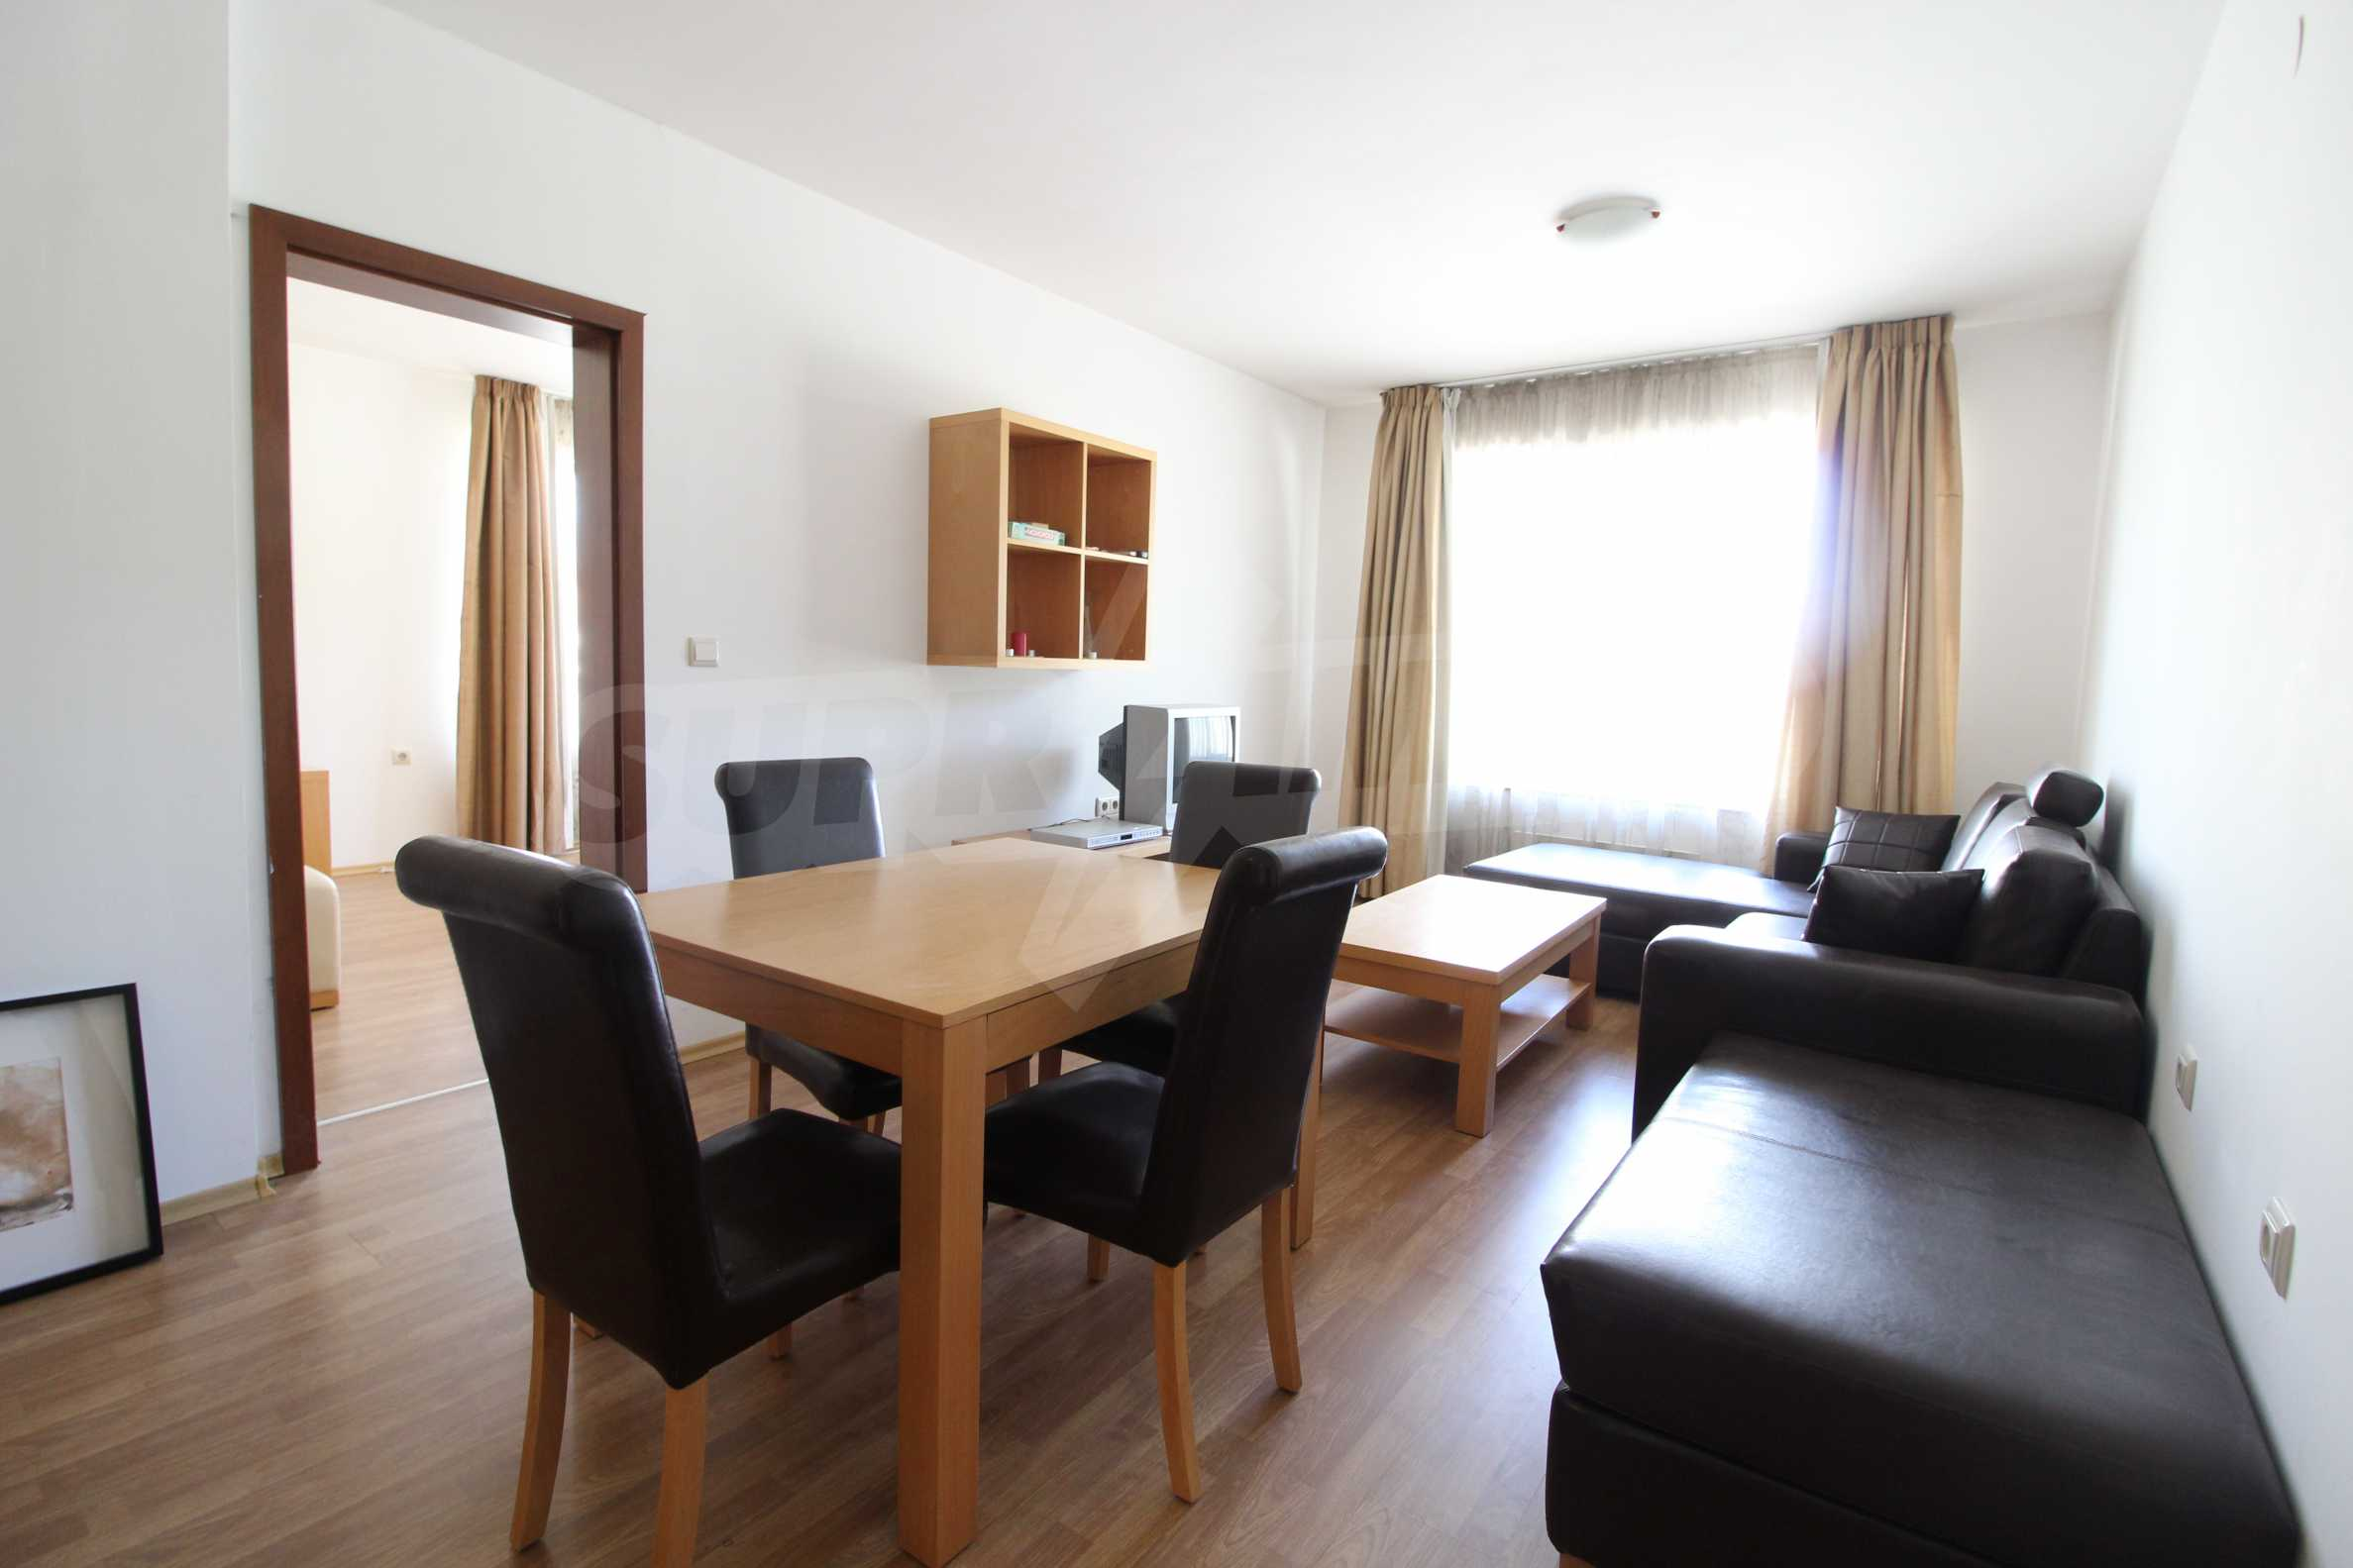 Furnished two-bedroom apartment located in Top Lodge complex, just meters from the ski lift in Bansko 2